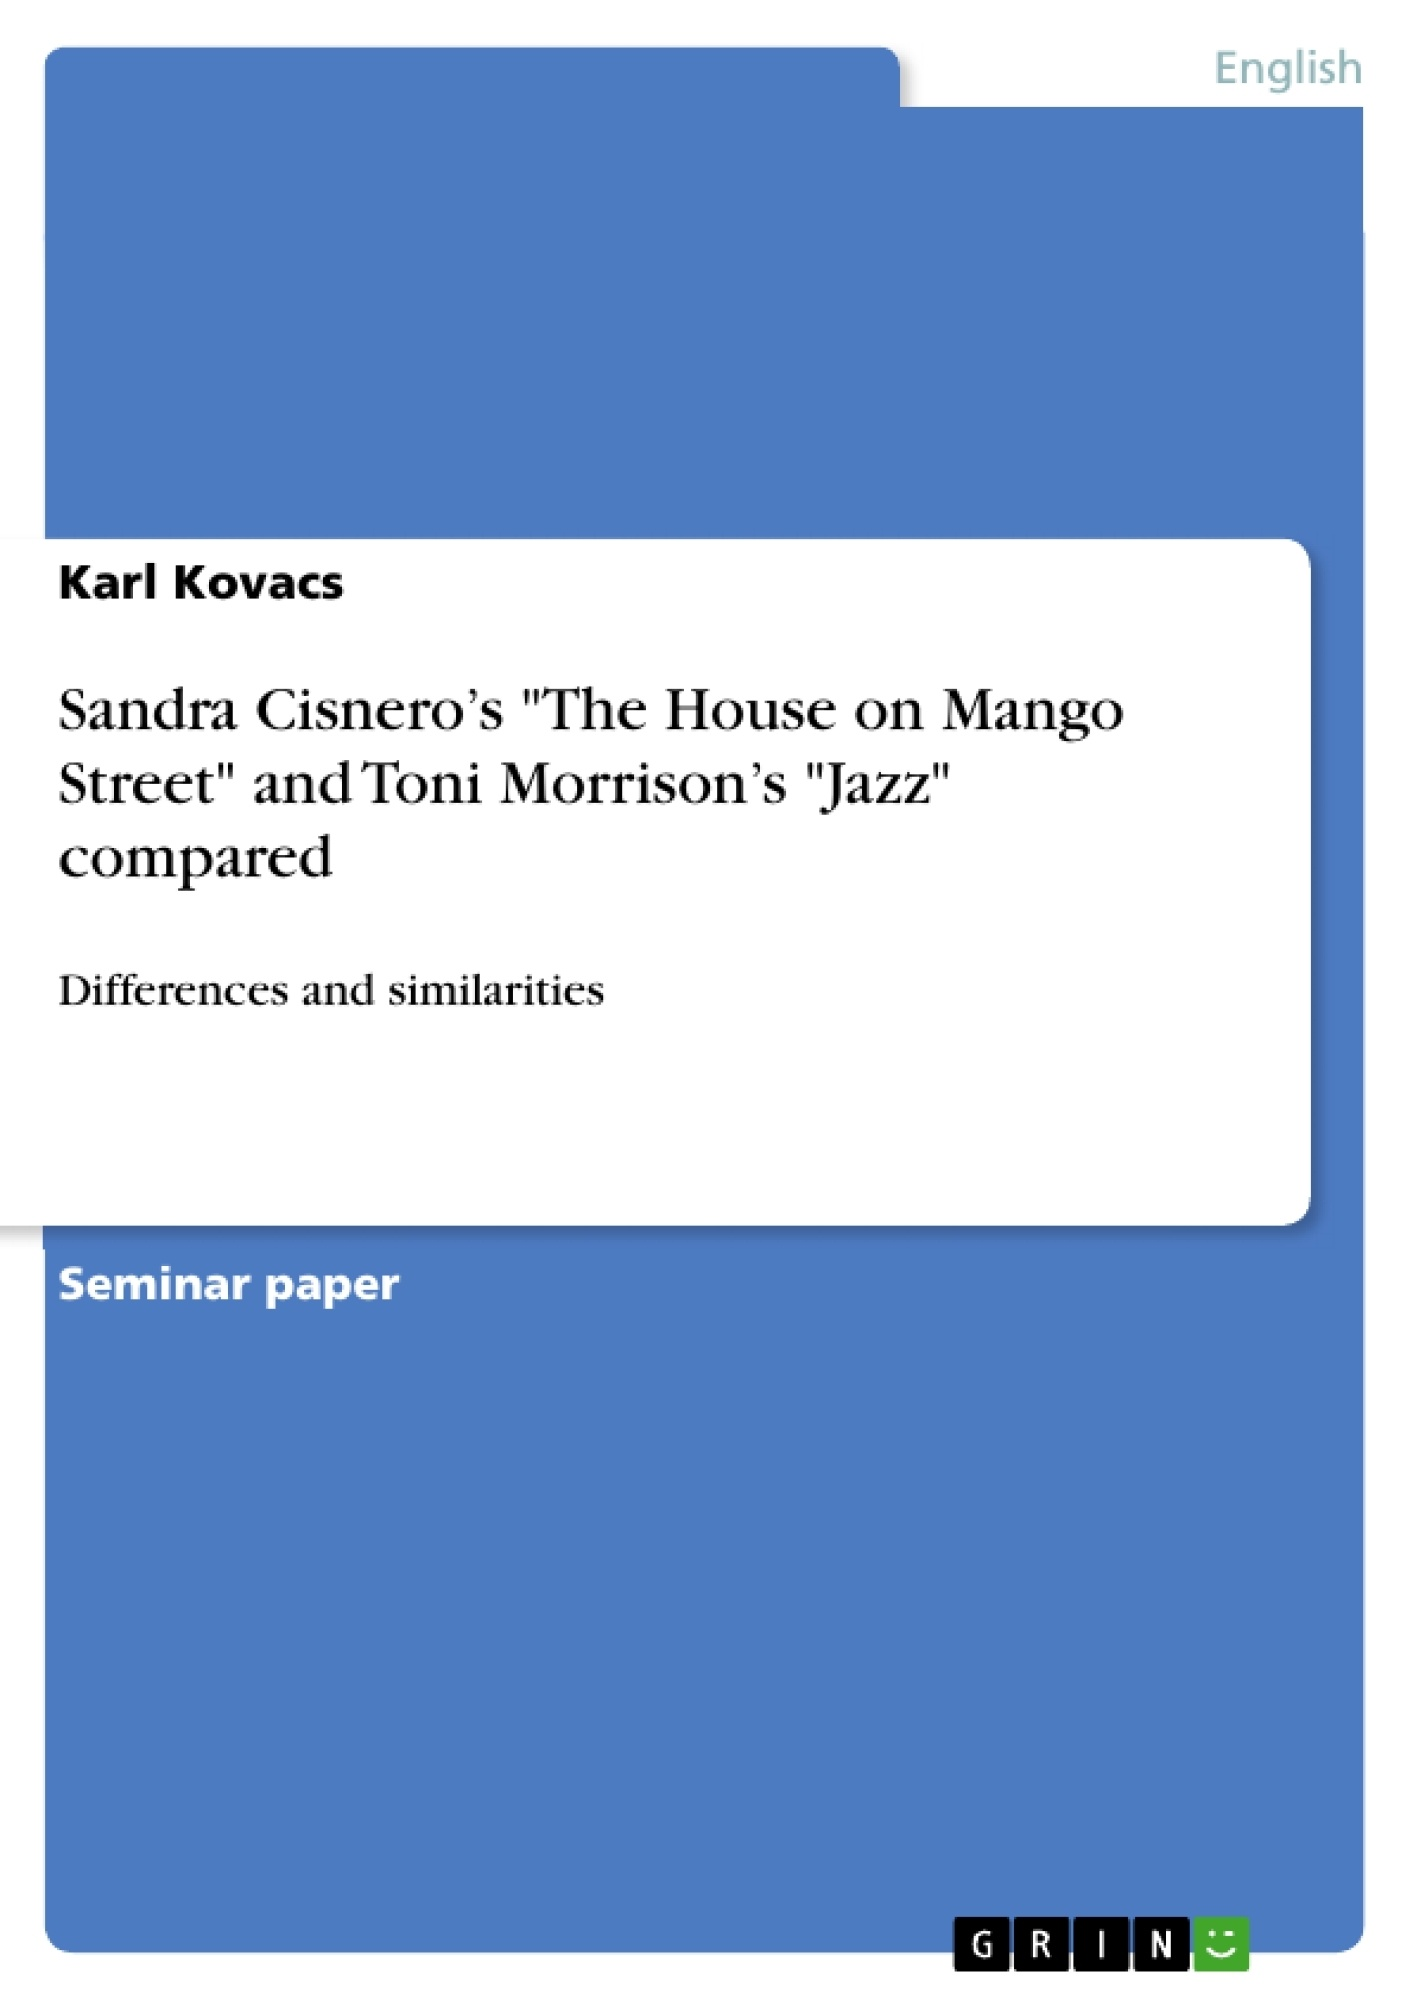 essay on jazz by toni morrison Thesis statement for jazz by toni morrison, national essay writing competition 2017, writing on lined paper, english language paper help, essay customer service.